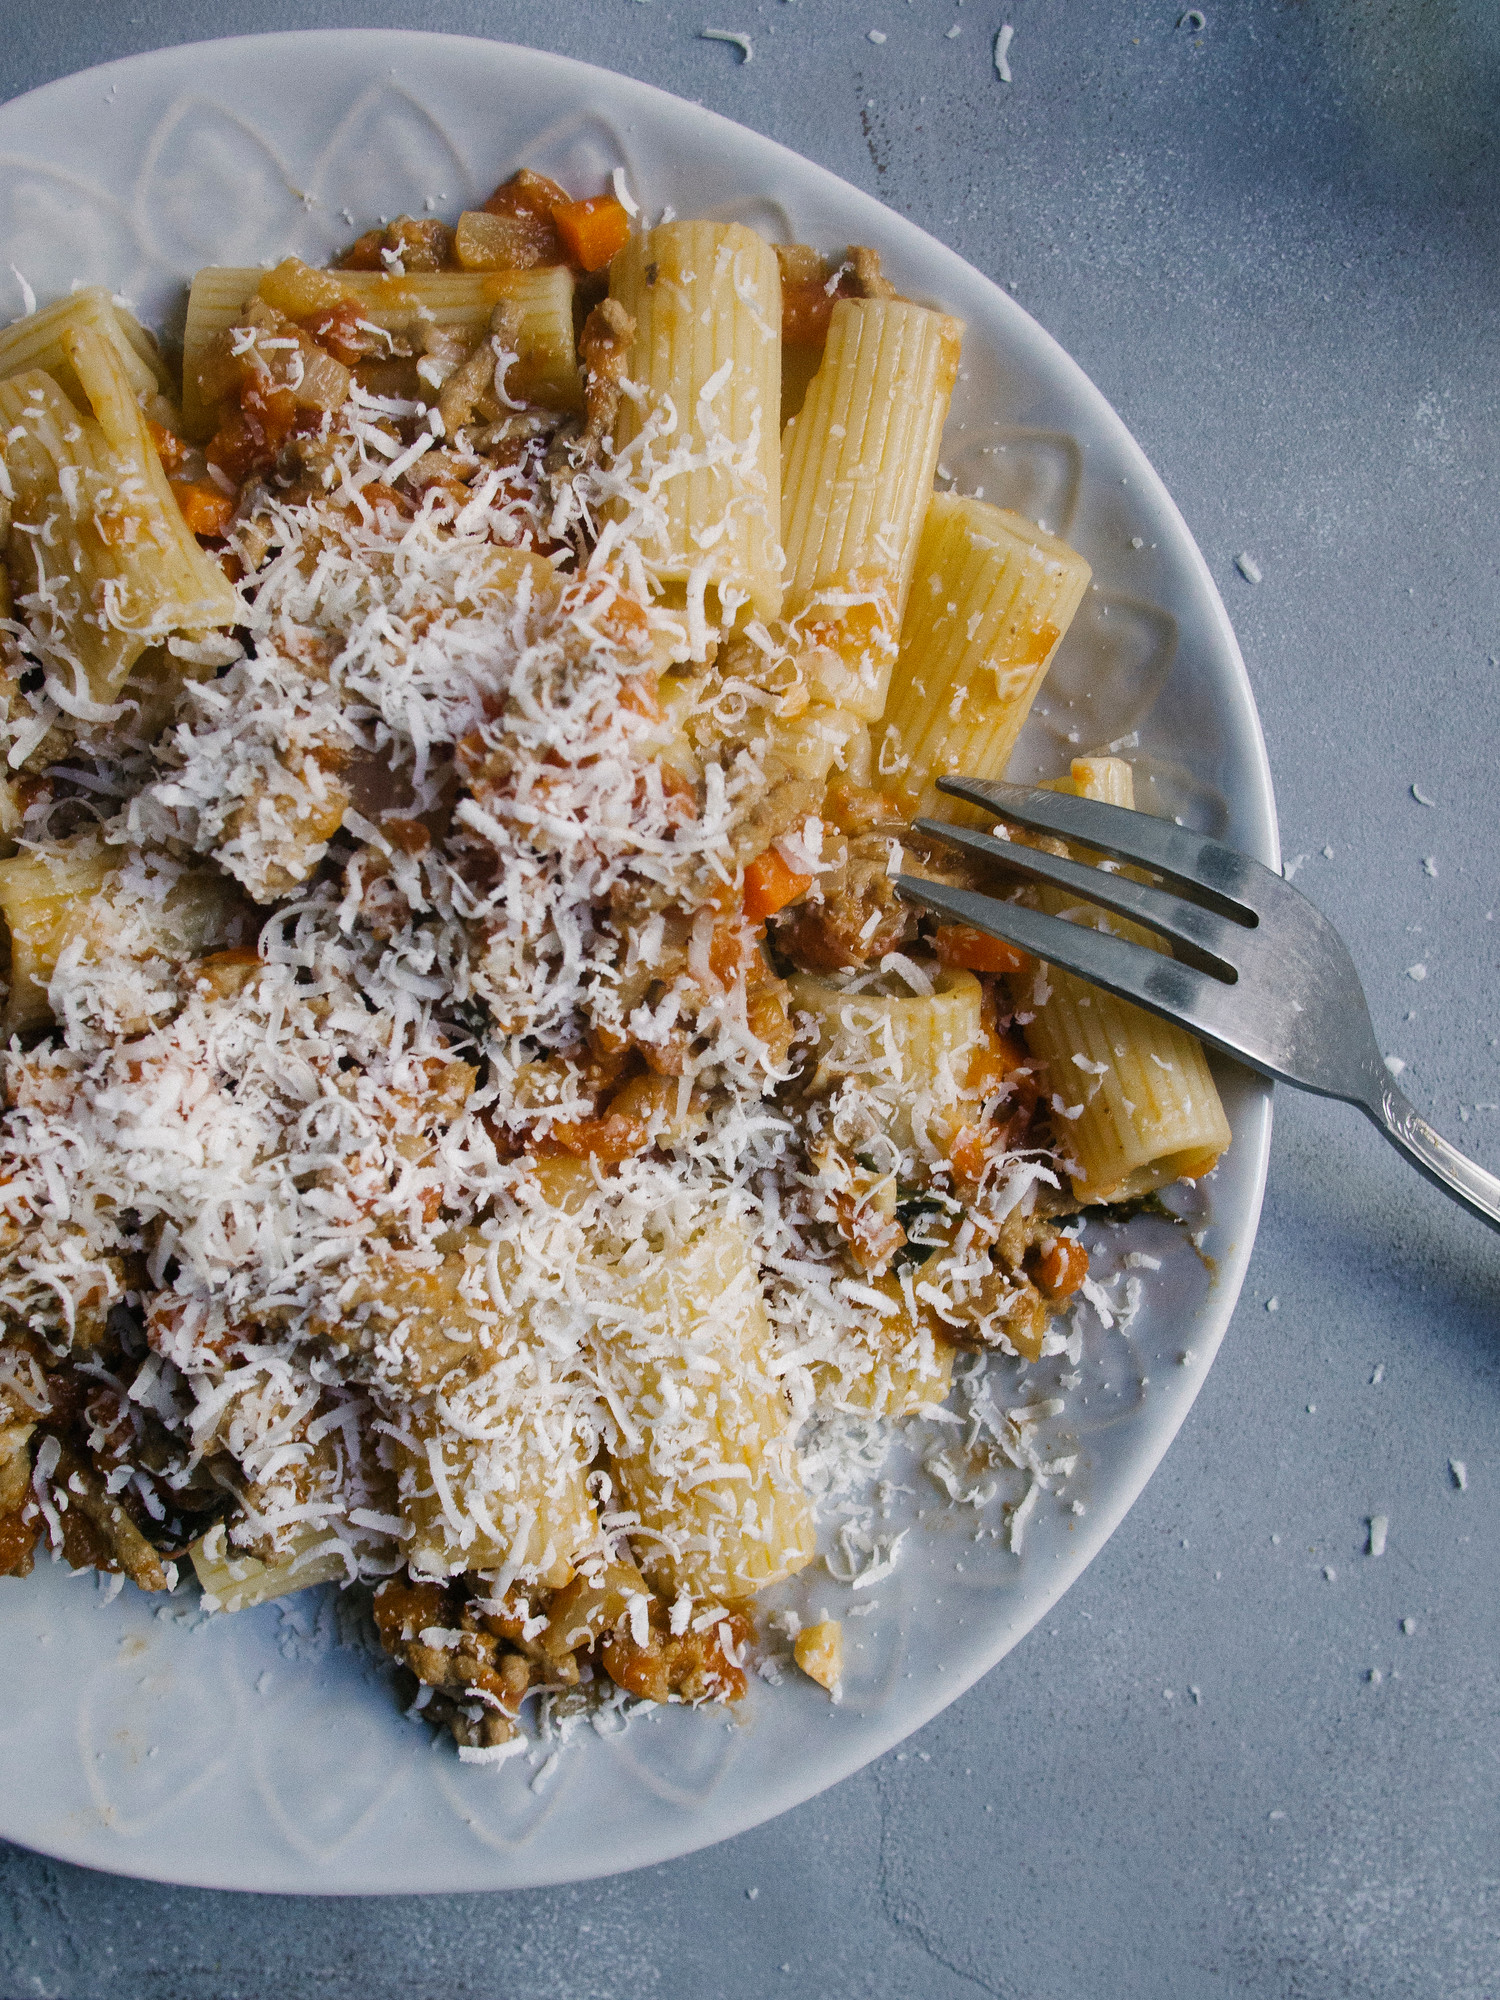 This easy rigatoni bolognese recipe is perfect for a weeknight meal and freezes beautifully.